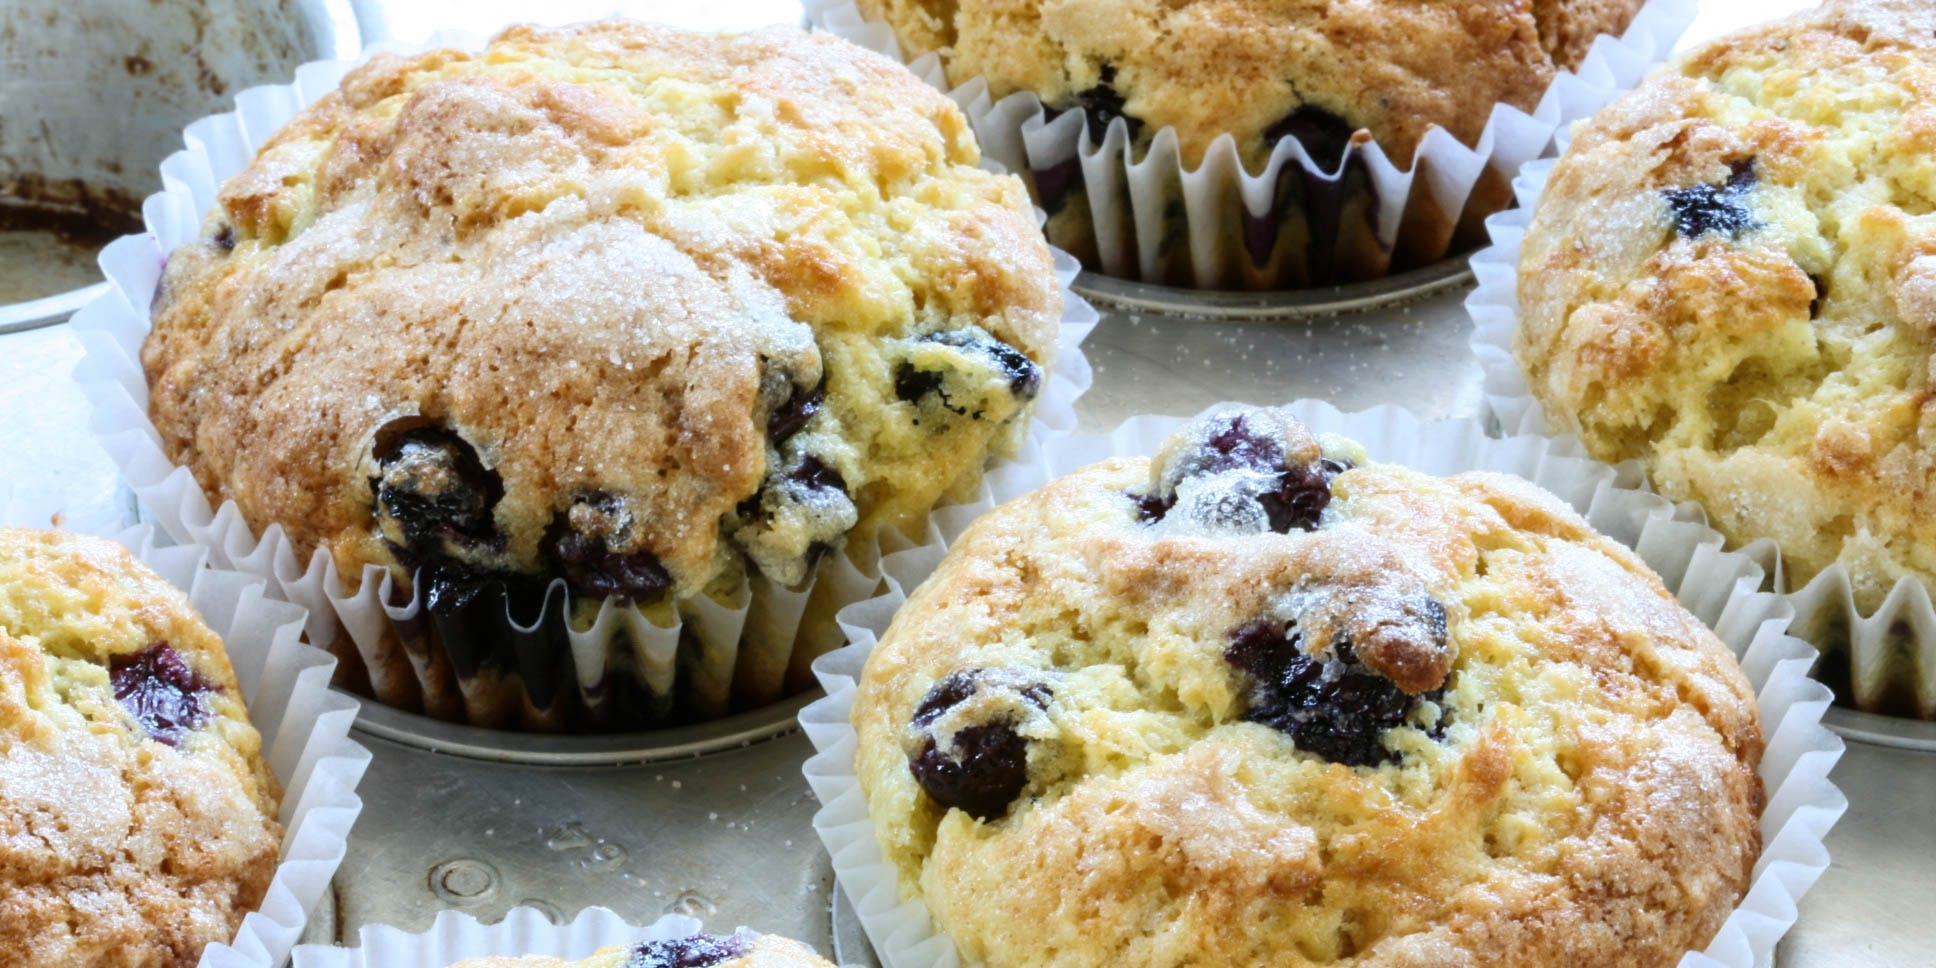 How to Make Cannabis-Infused Blueberry Muffins